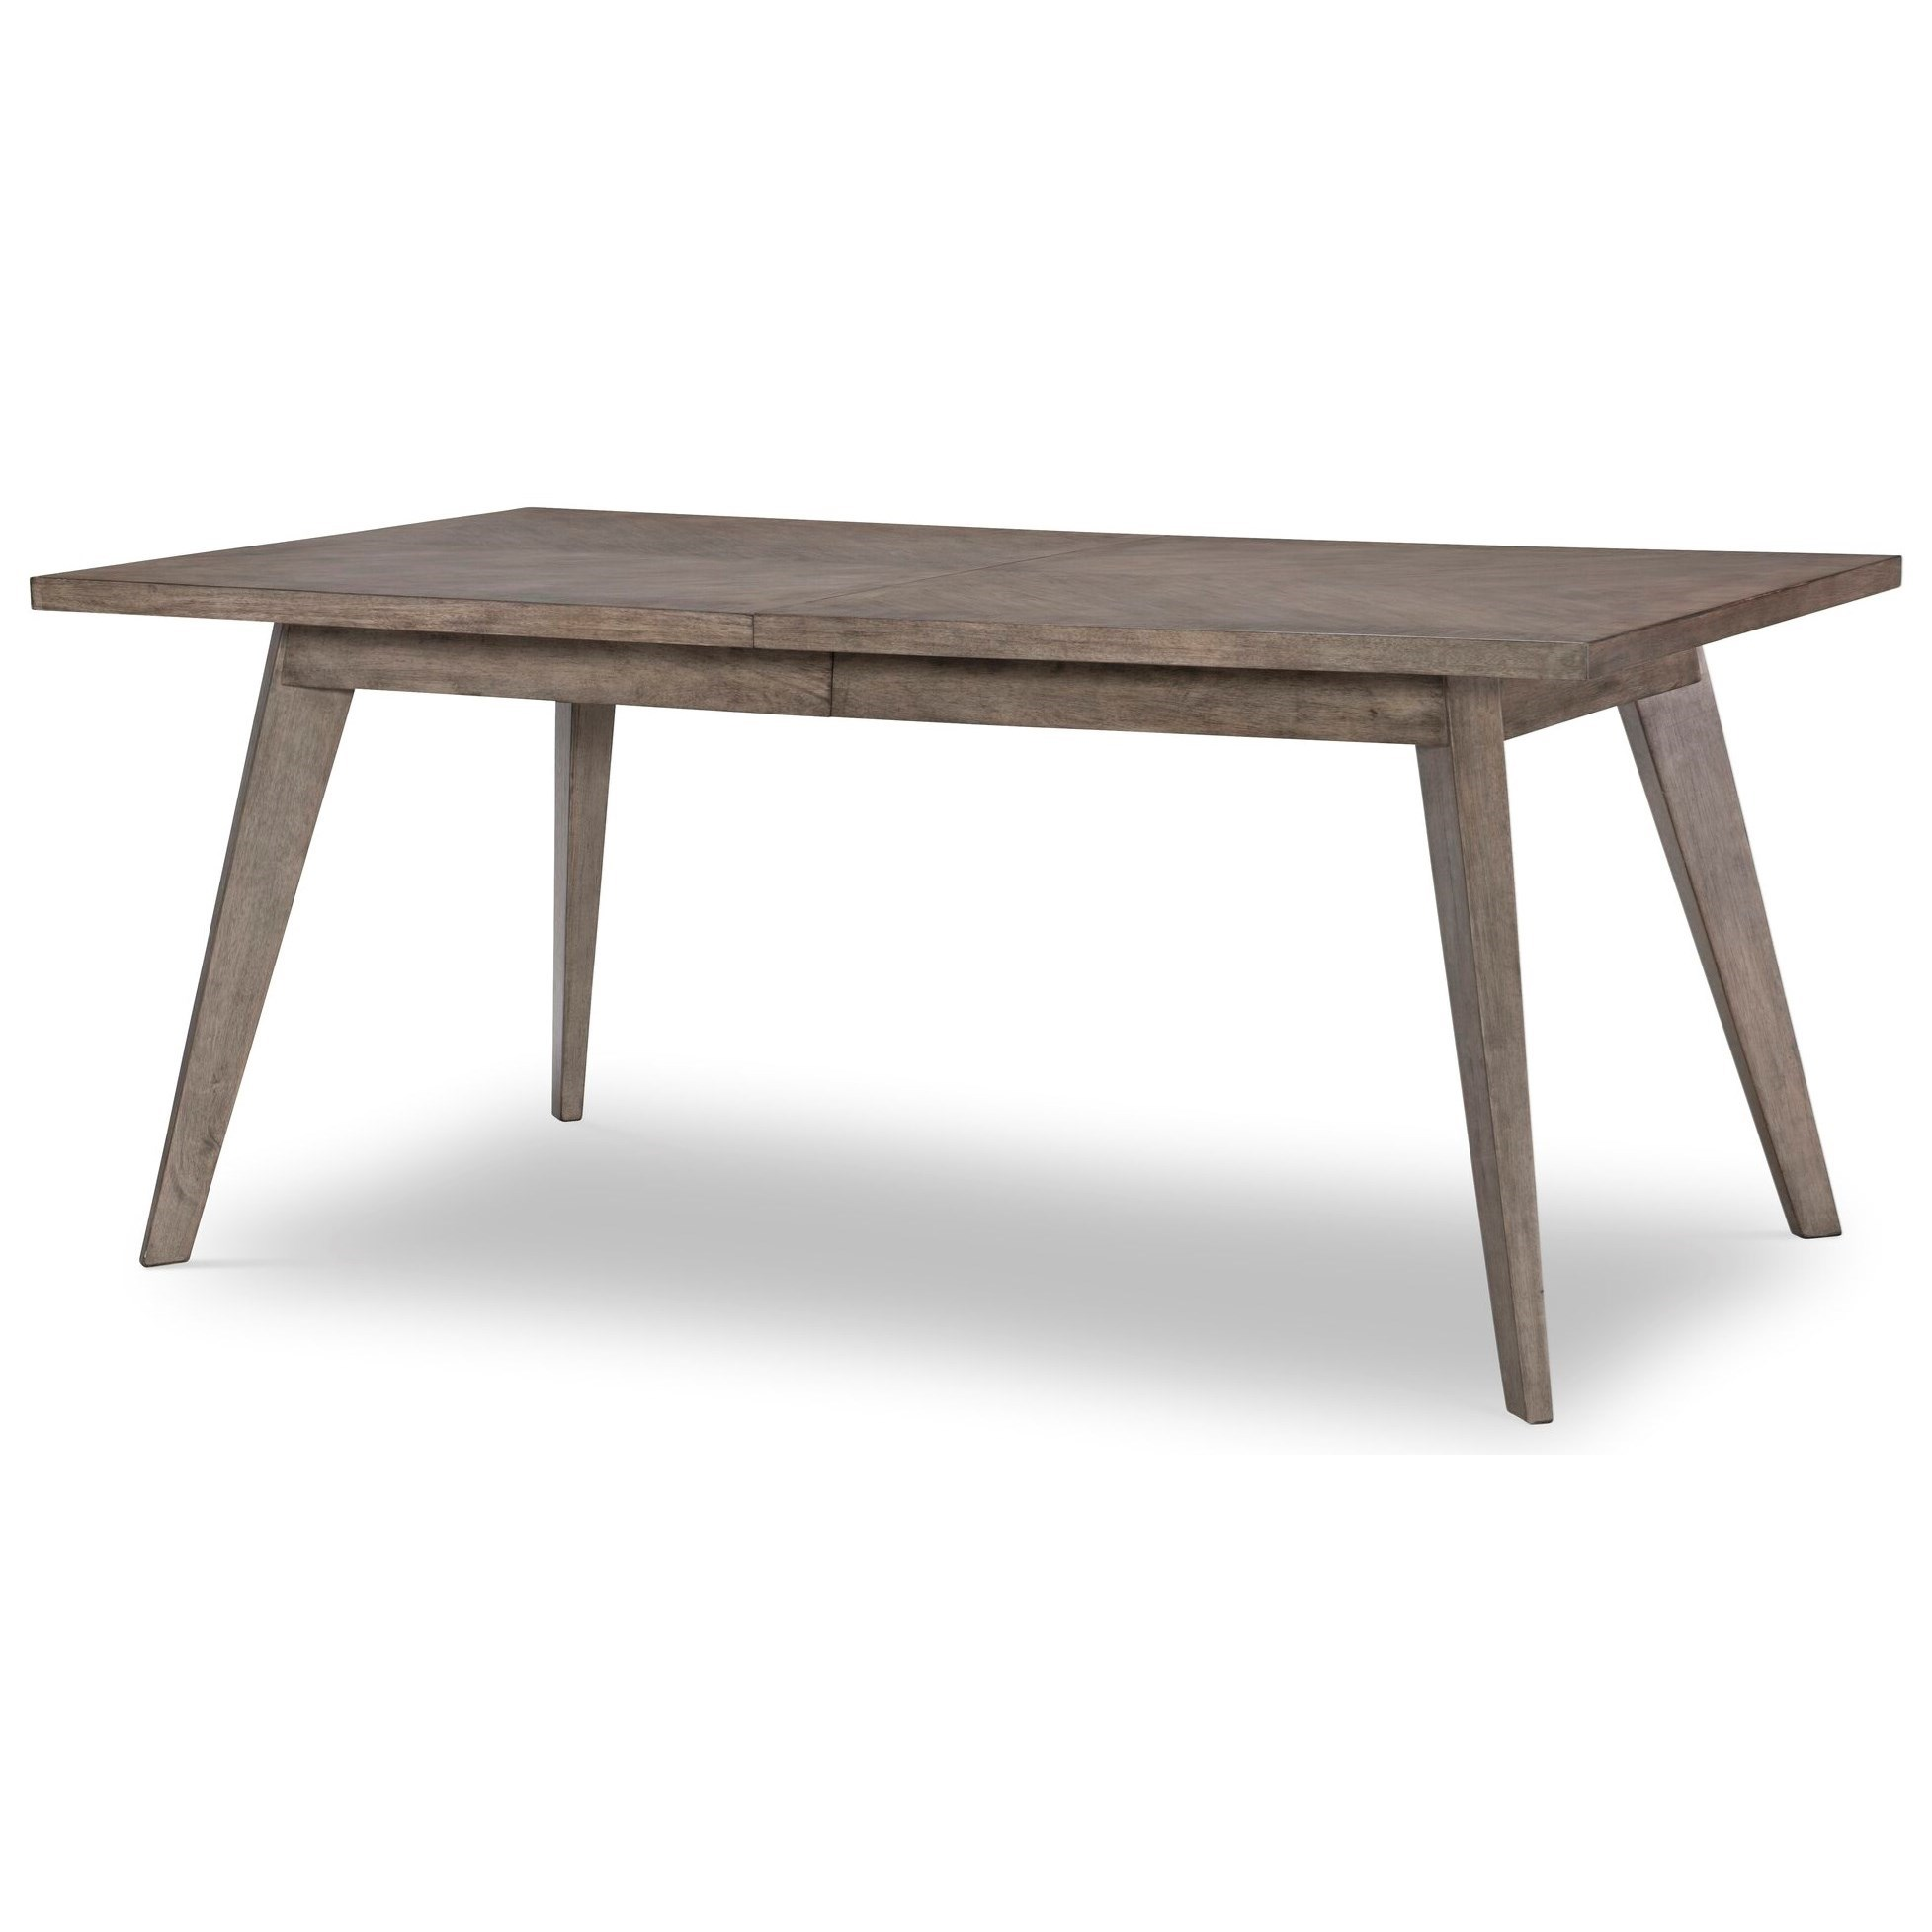 Greydale Rectangular Leg Table